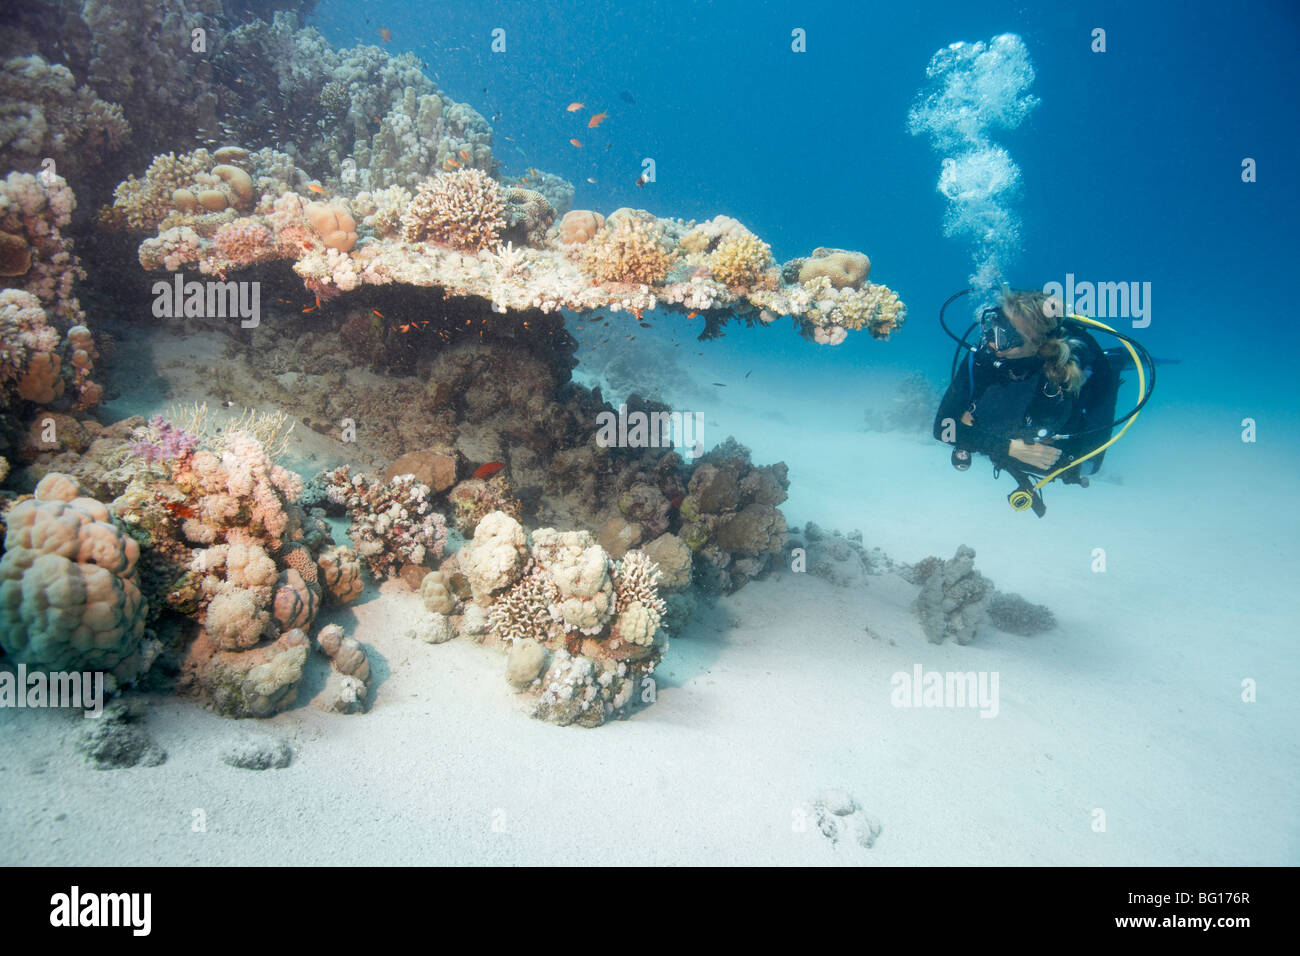 Diver beside reef - Stock Image